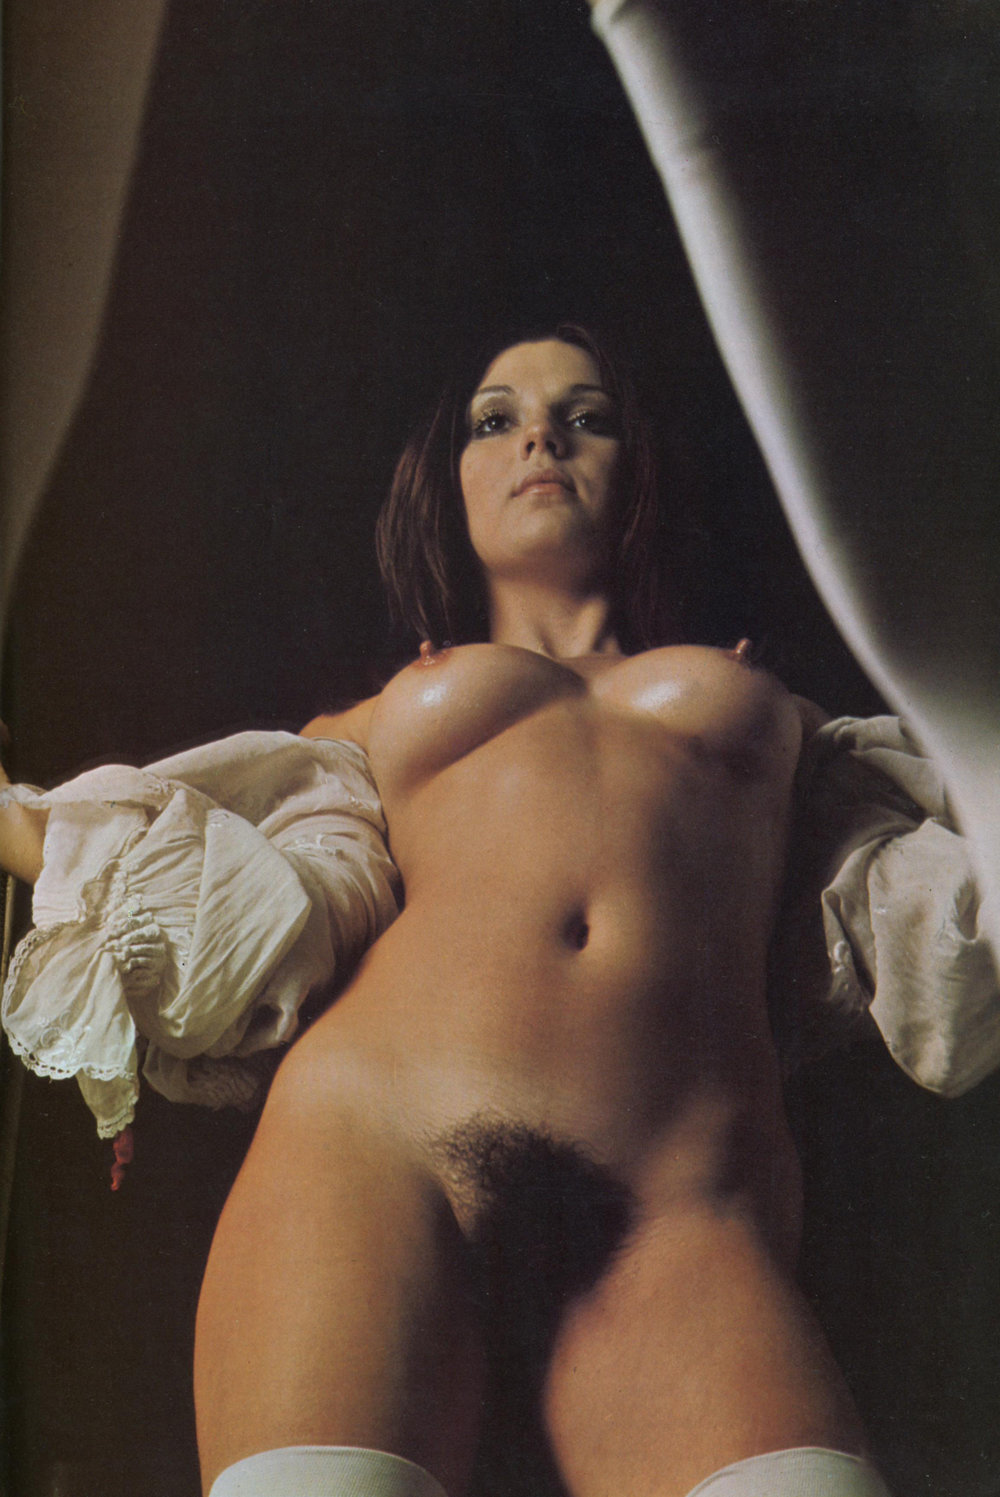 claire-by-amnon-bar-tur-club-magazine-1975